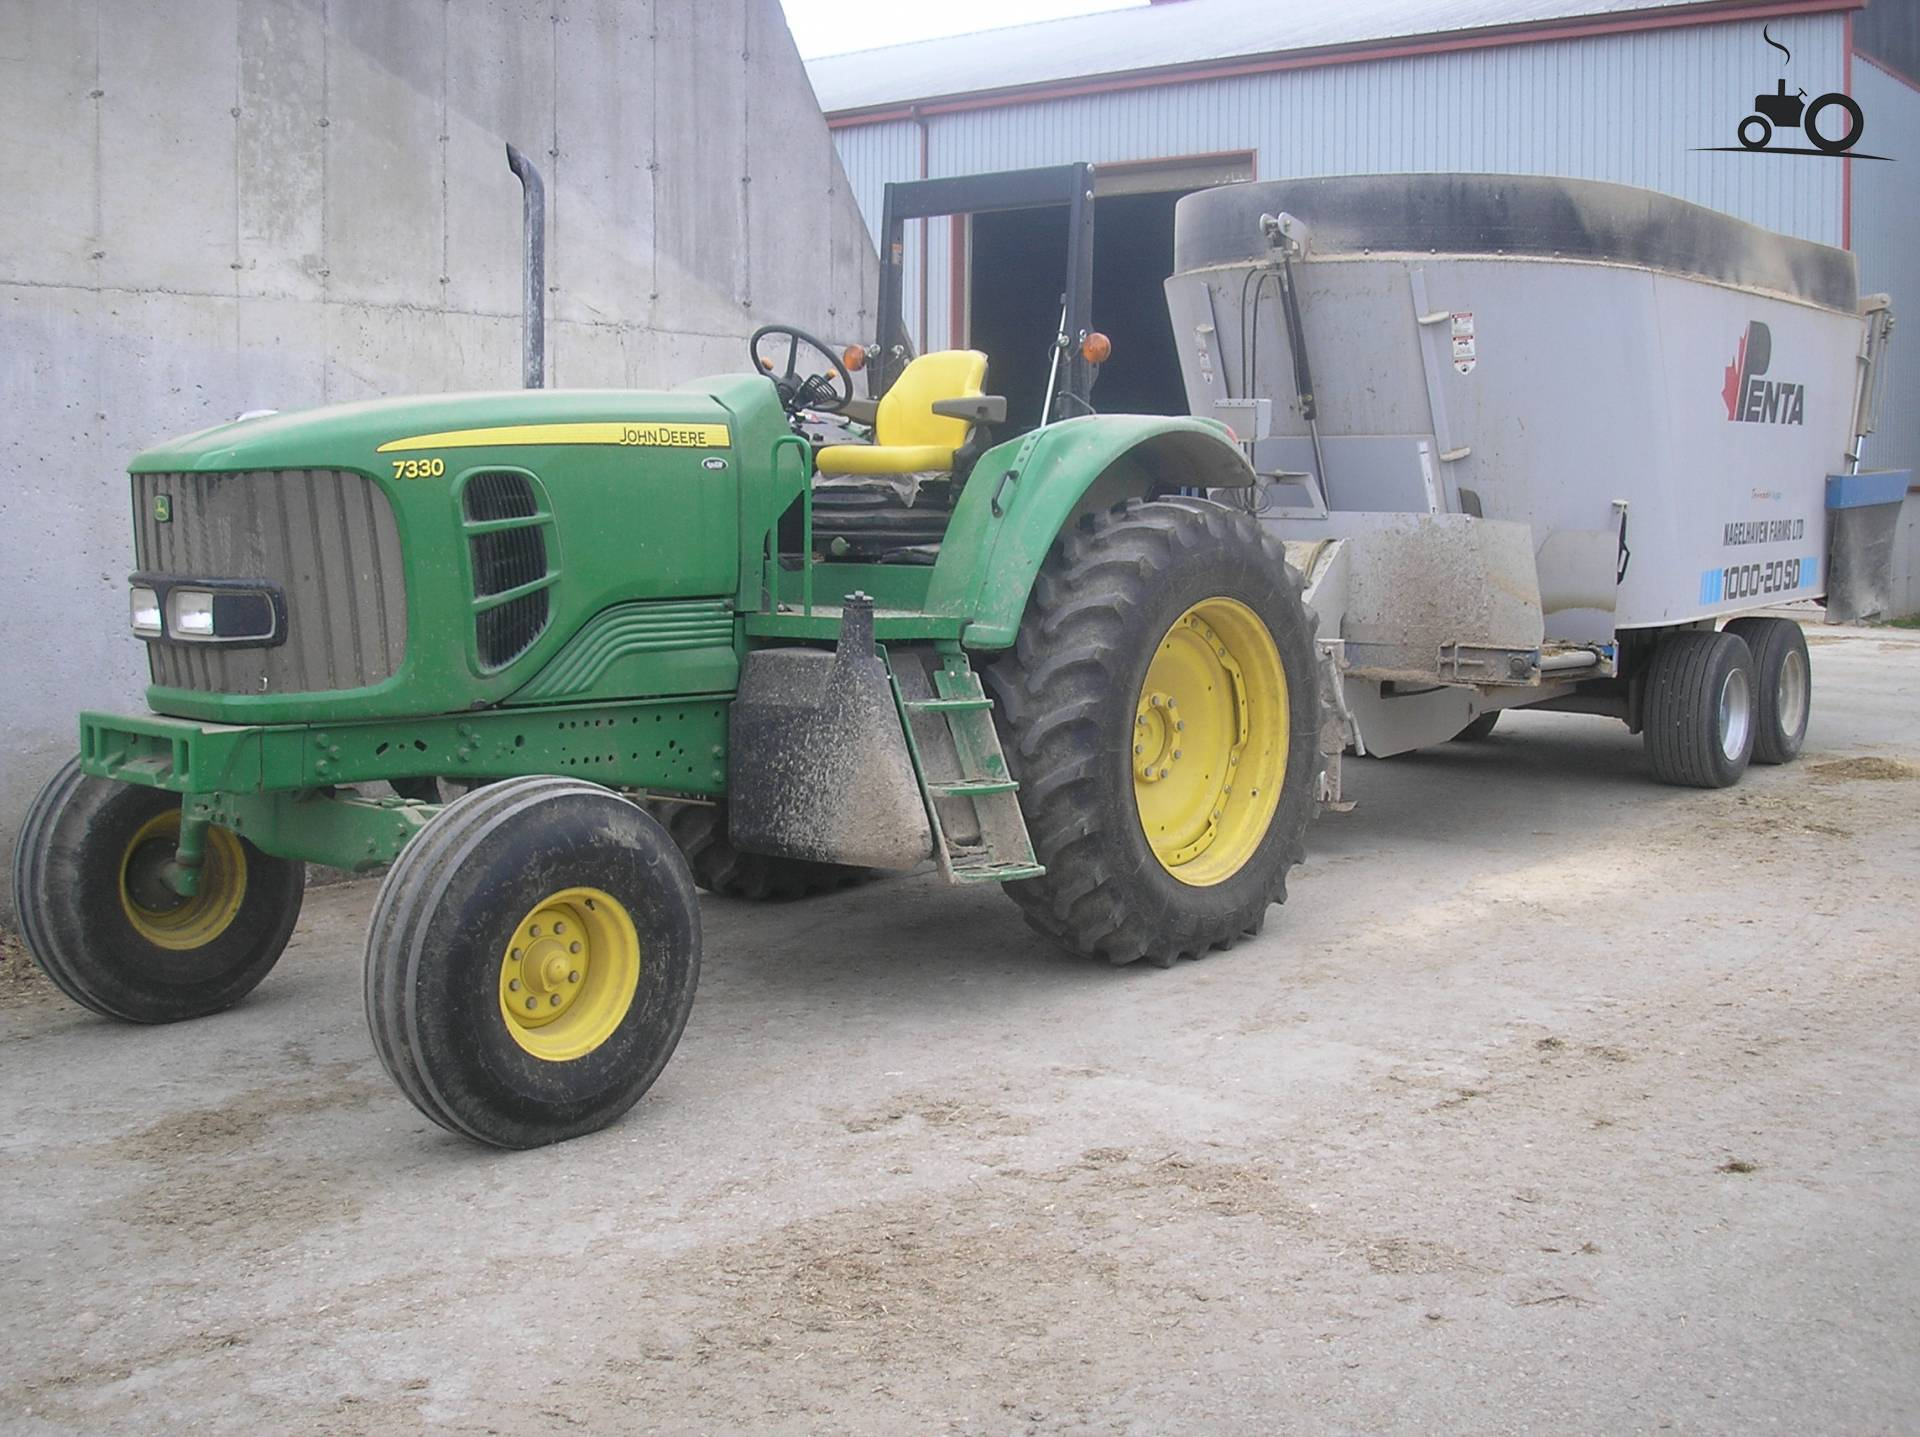 John Deere Tractor Tire Pressure : John deere specs and data everything about the